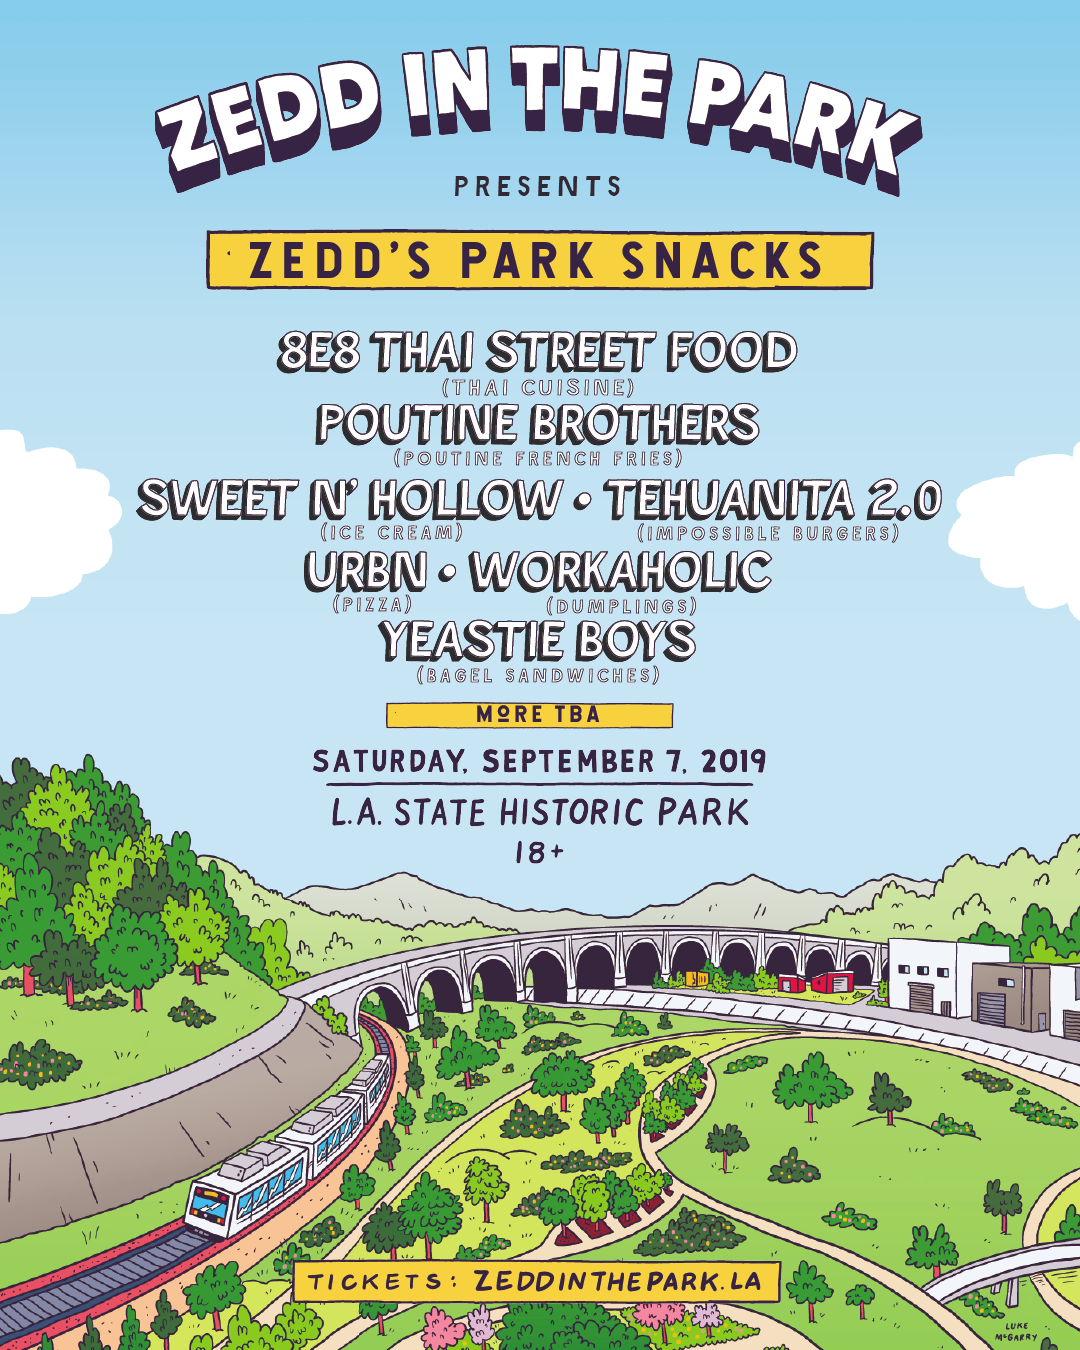 Zedd's Park Snacks flyer